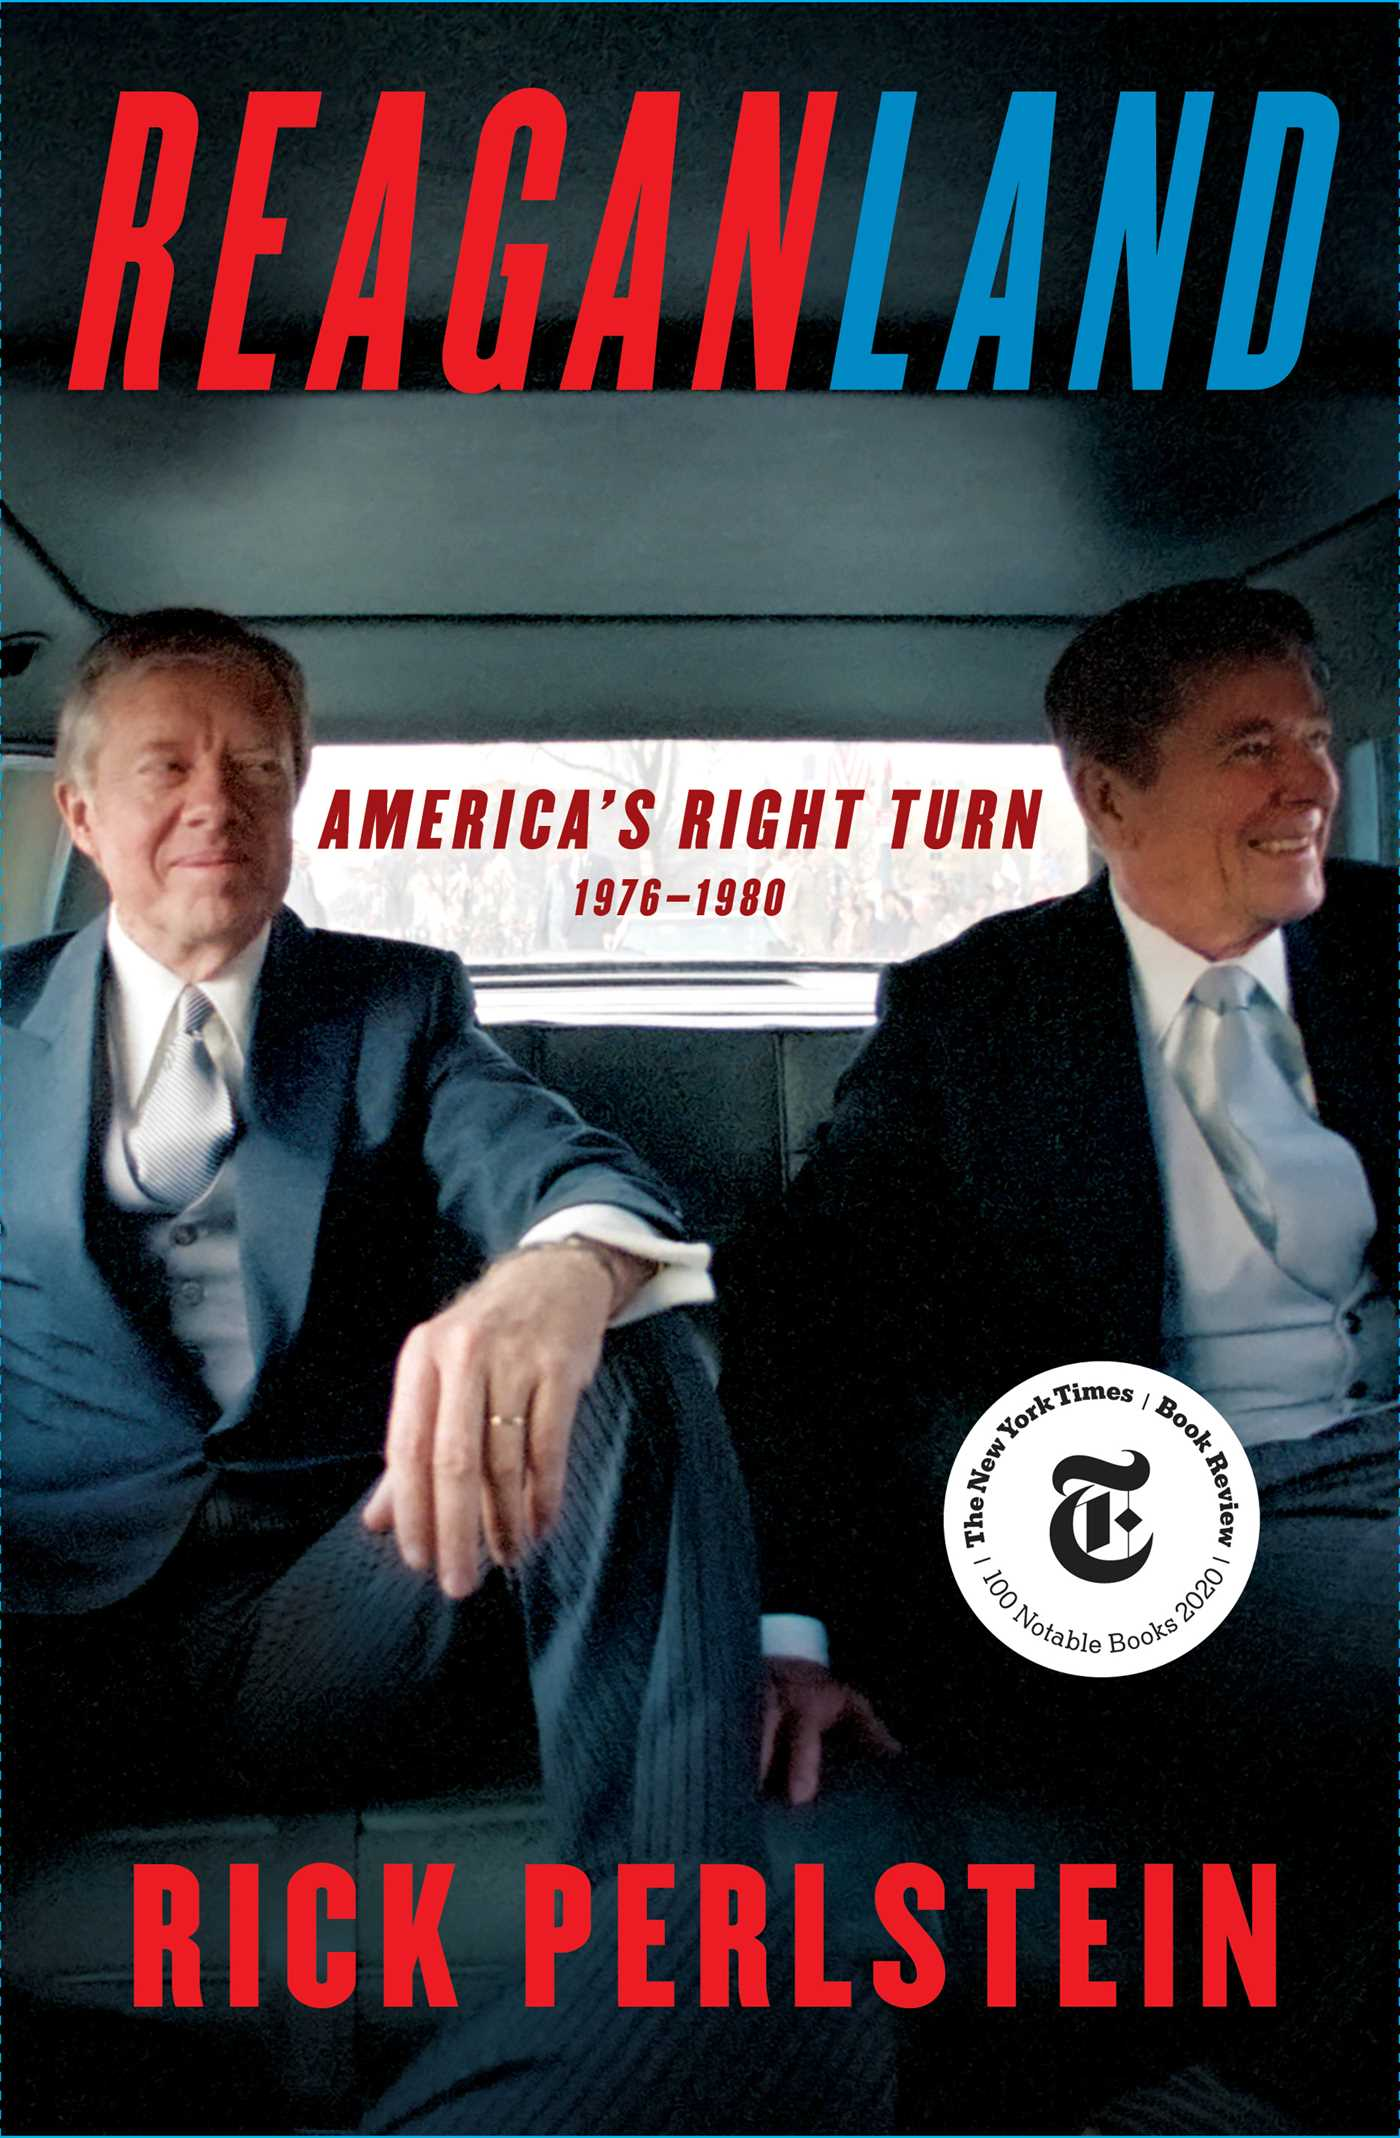 Reaganland   Book by Rick Perlstein   Official Publisher Page   Simon &  Schuster